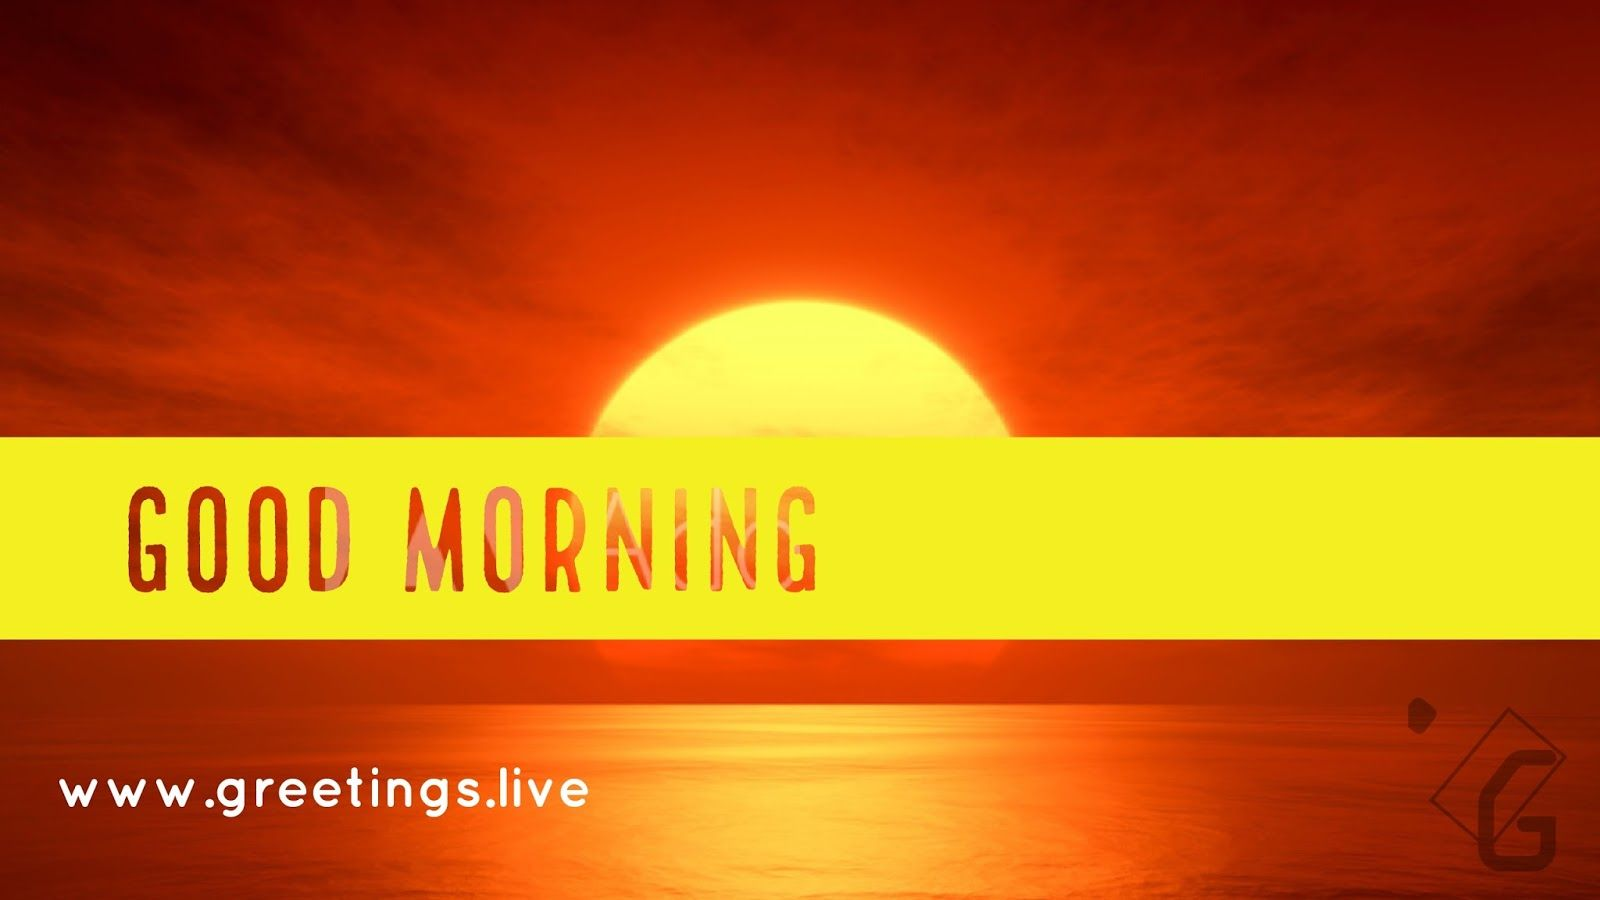 Morning Greetings At Ocean Background Good Morning Greetings Live